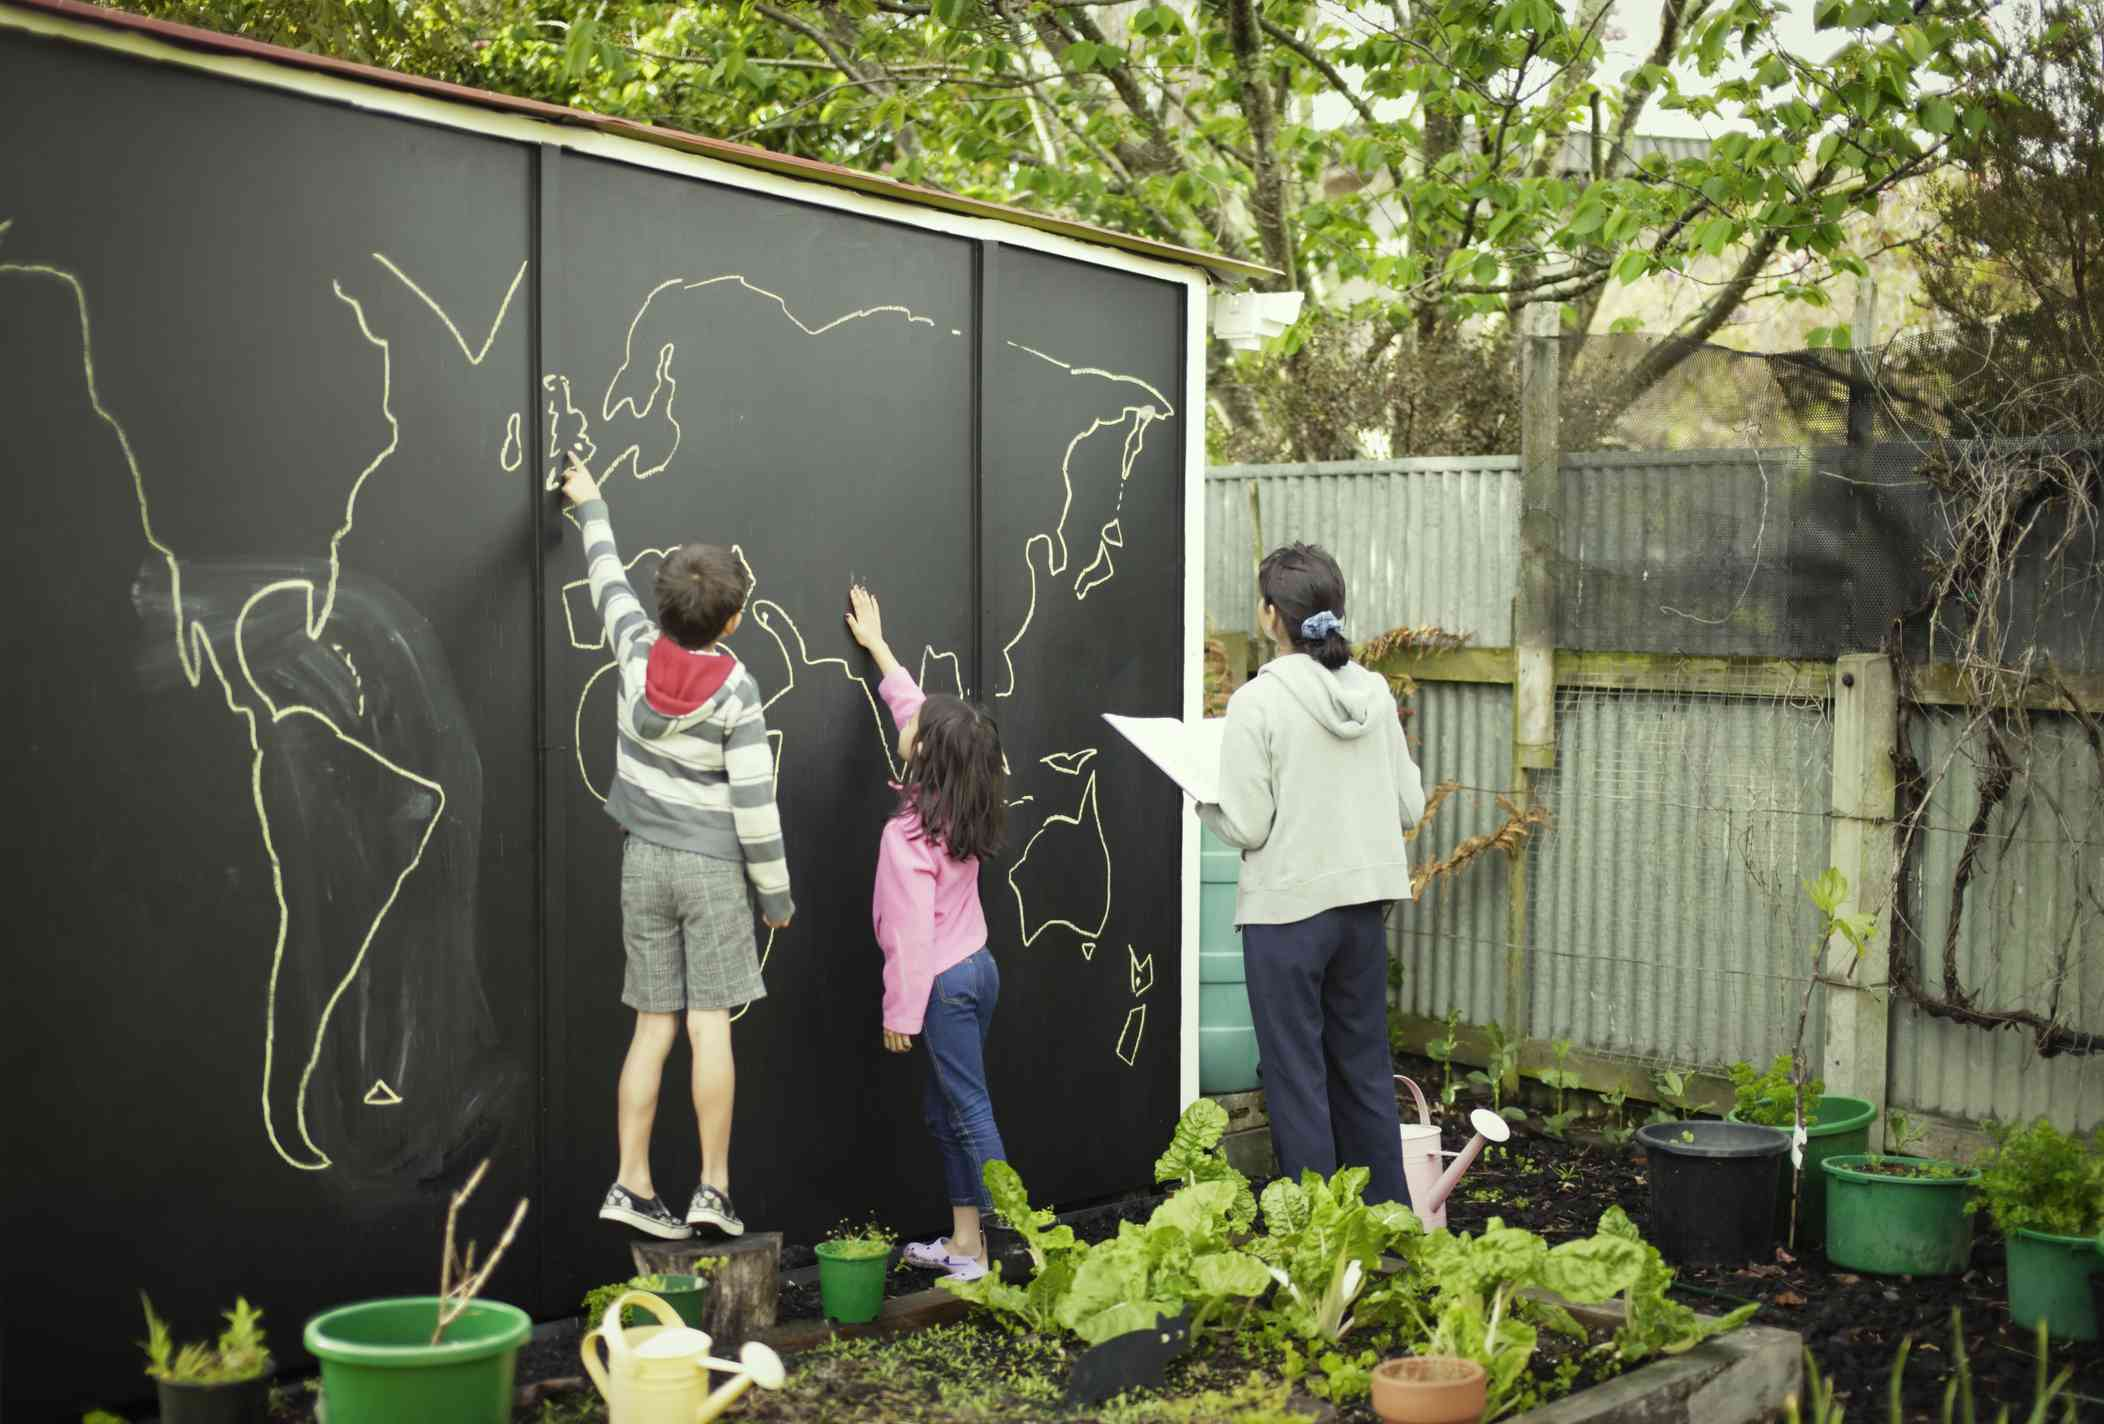 Two kids and an adult drawing a world map on a giant outdoor chalkboard.